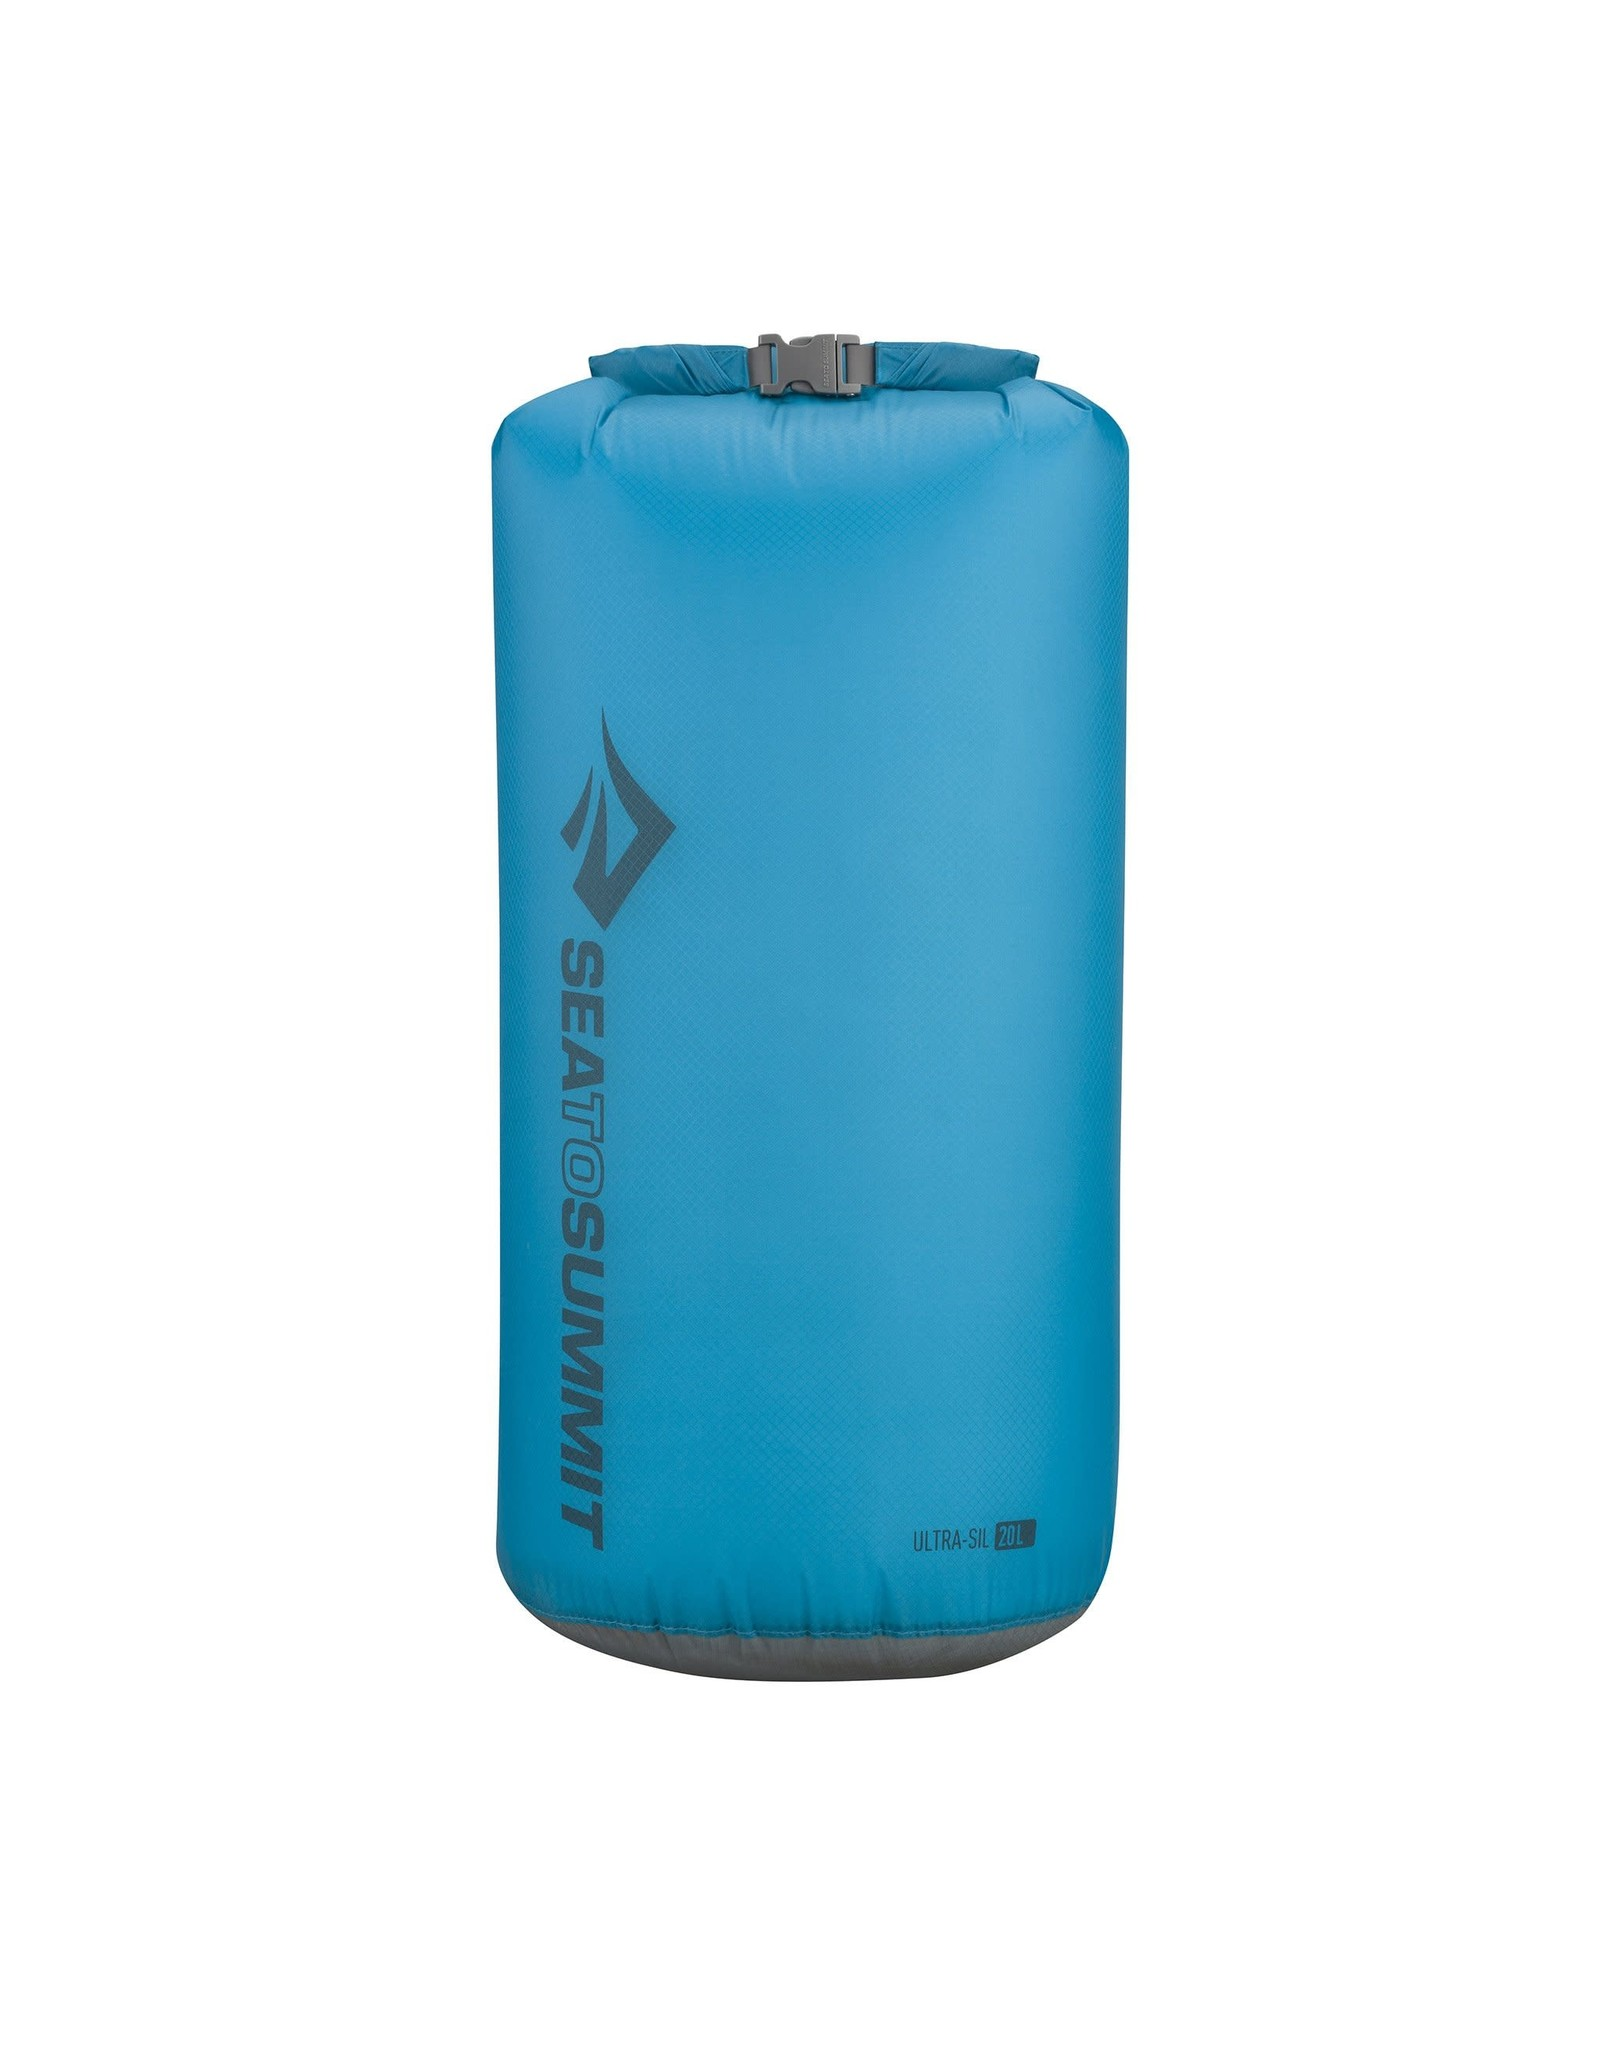 Sea to Summit Ultra-Sil Dry Sack - 20 L - Pacific Blue